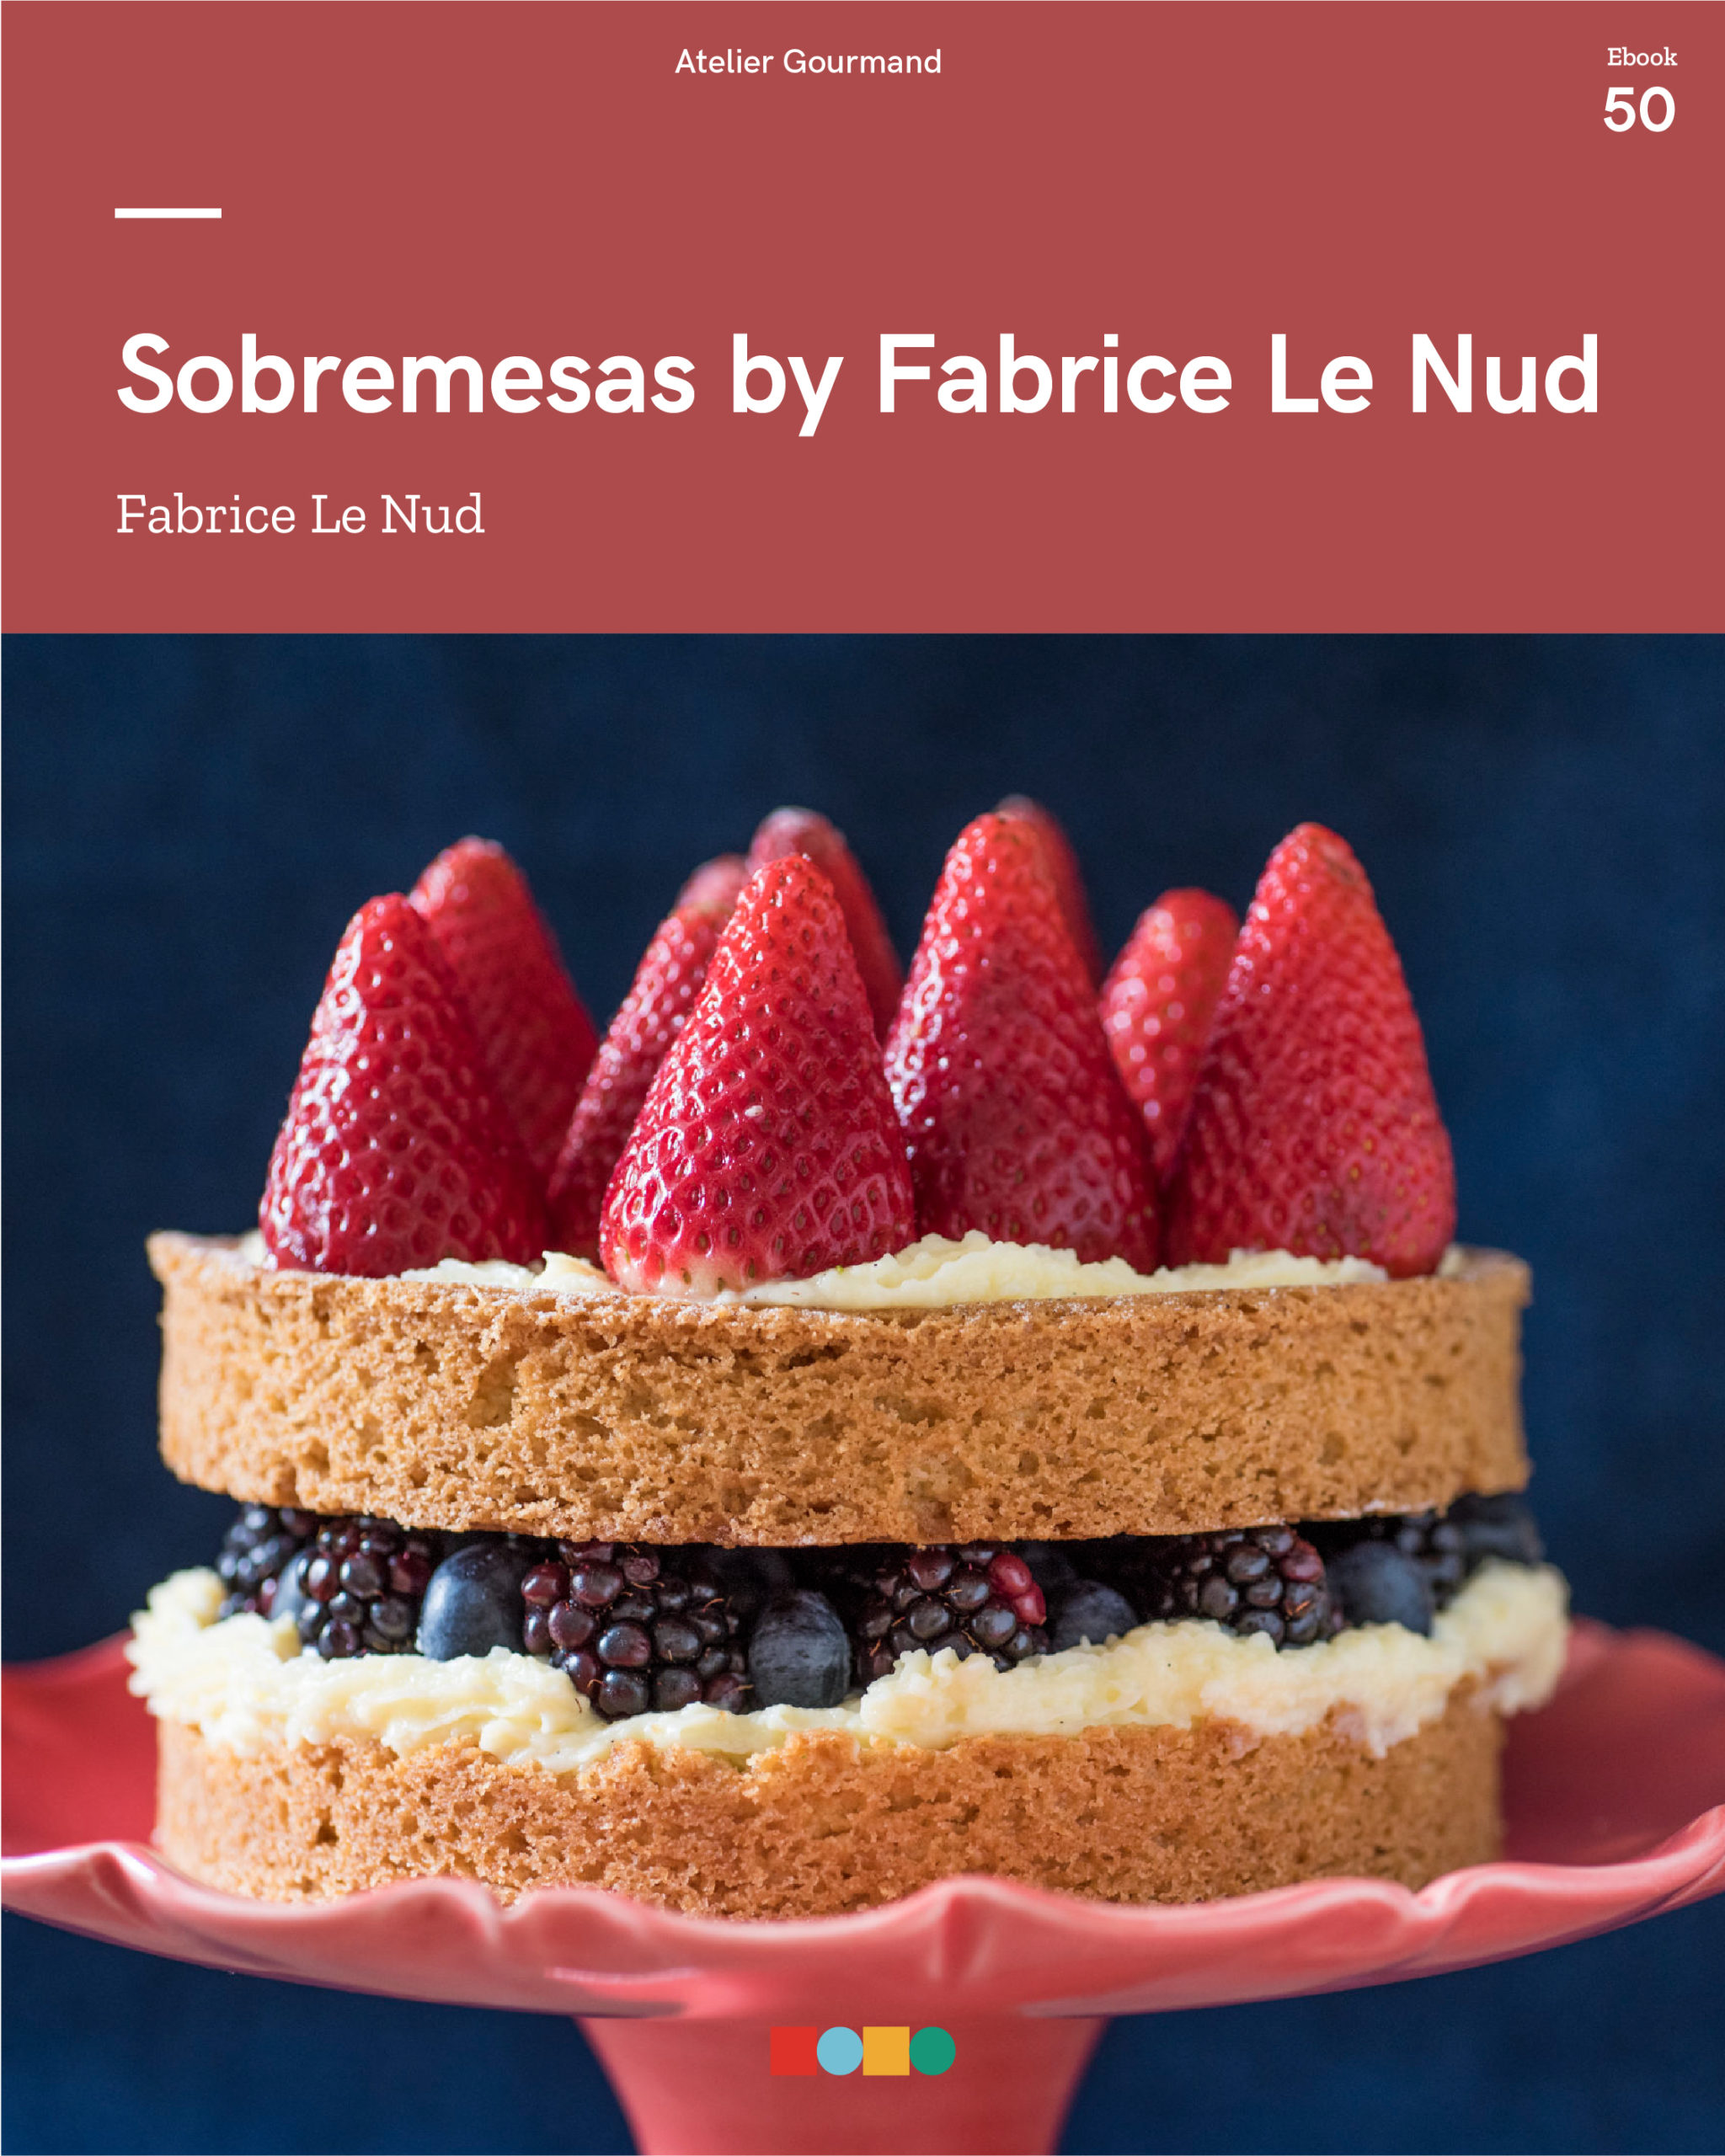 Sobremesas by Fabrice Le Nud